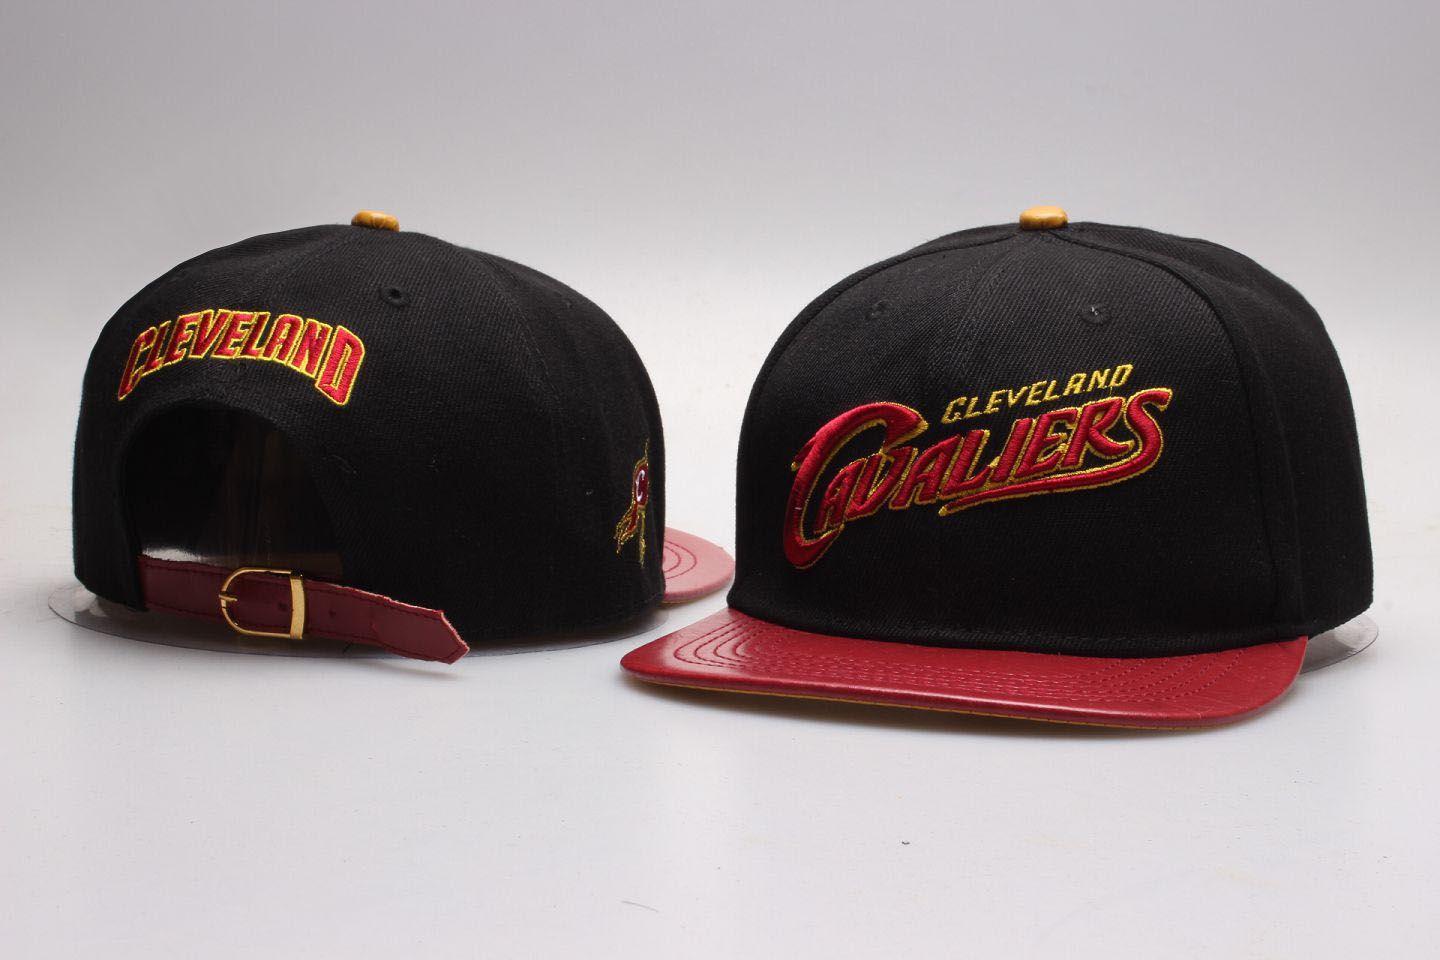 NBA Cleveland Cavaliers Snapback hat 201811252